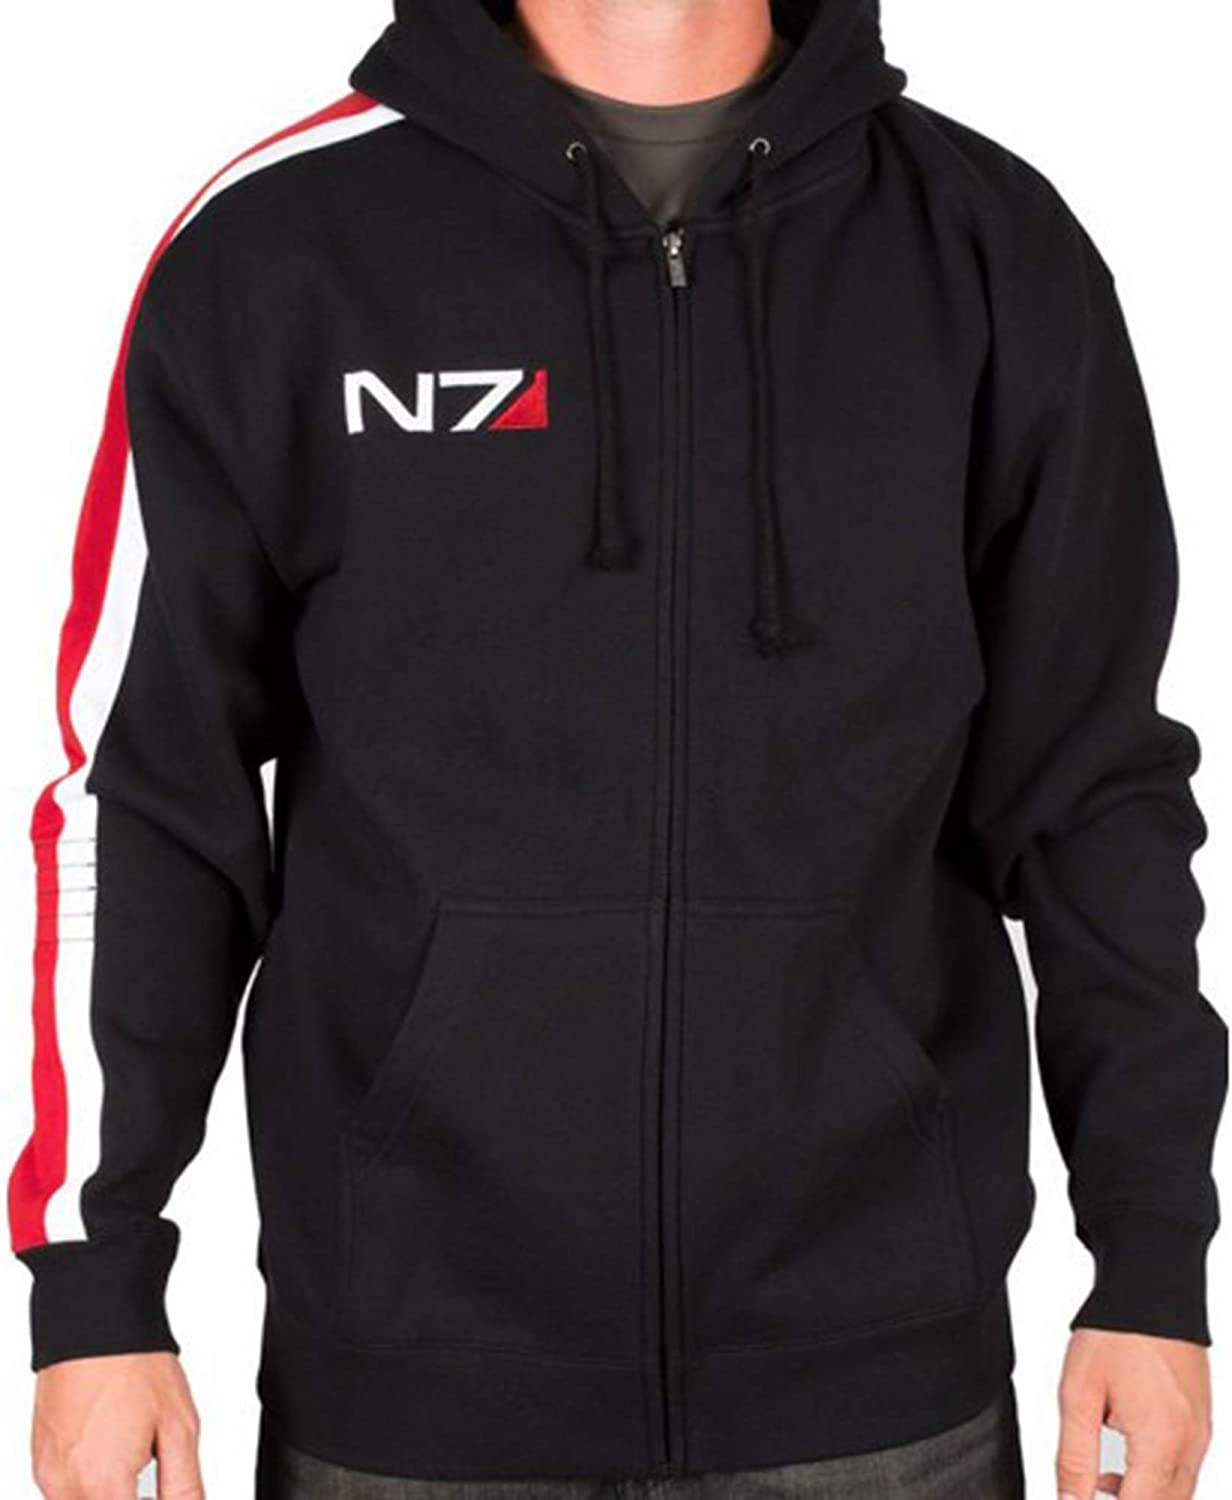 Spazeup Men's N7 Jacket Mass Max 89% OFF Louisville-Jefferson County Mall Commander Costume Cosplay 3 Shepard